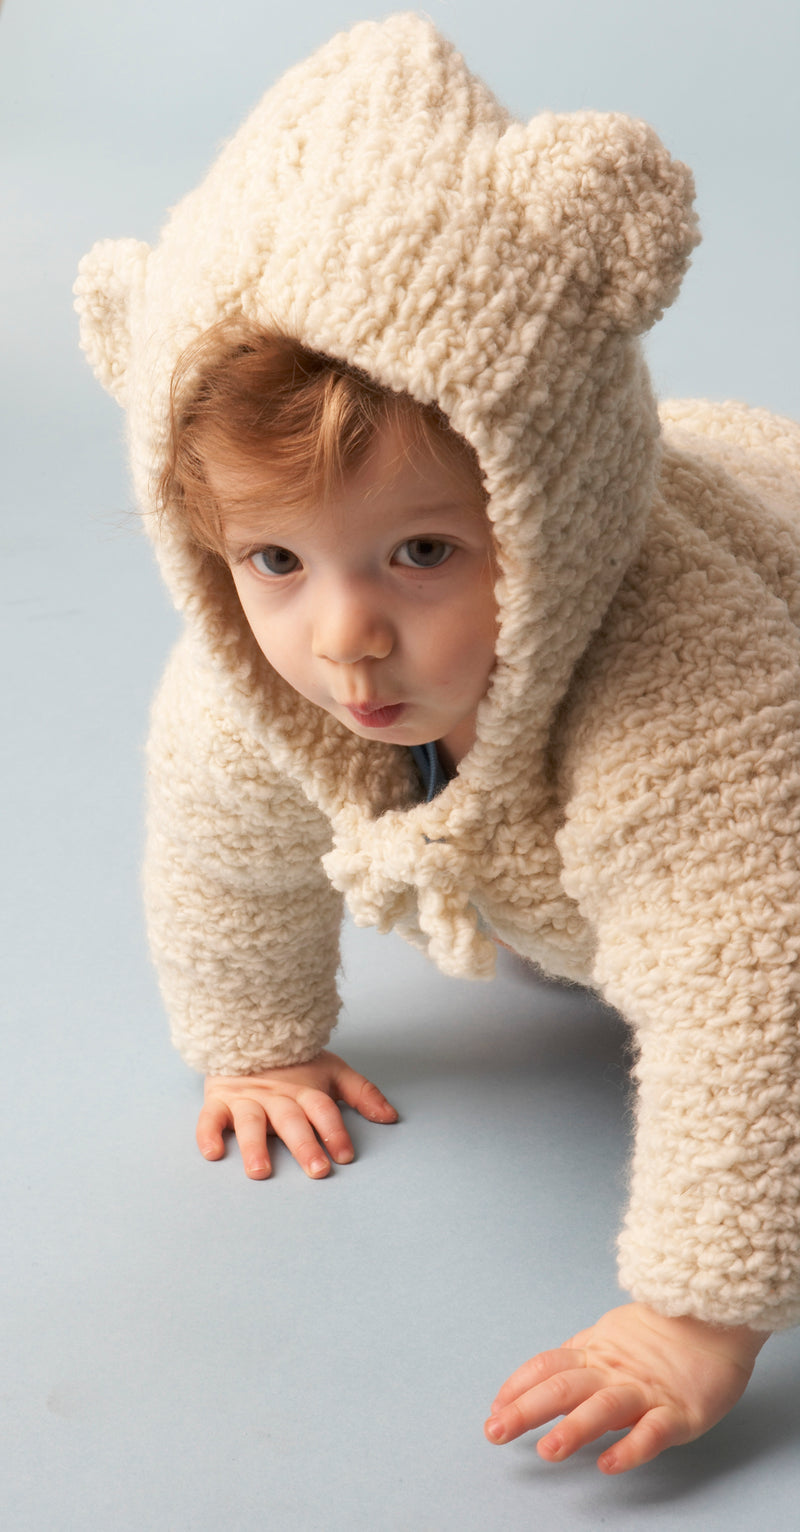 Baby Bear Hooded Jacket Pattern (Knit)